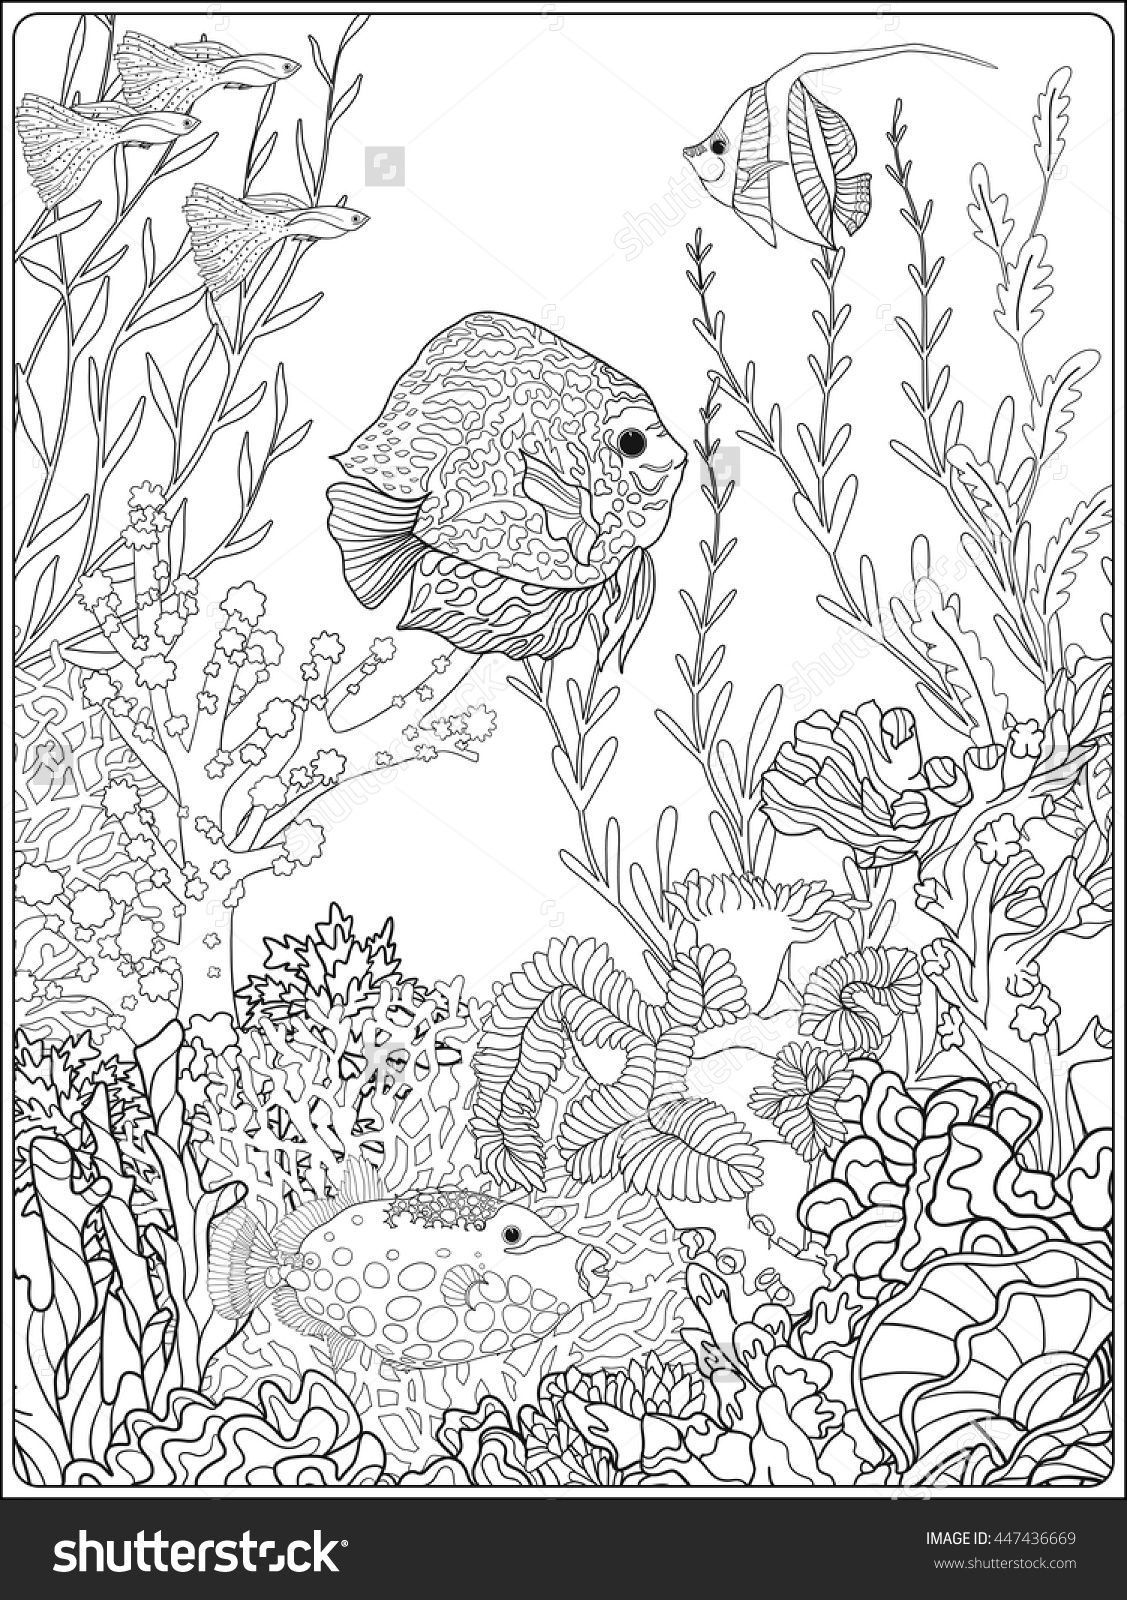 Great Barrier Reef Fish Coloring Page